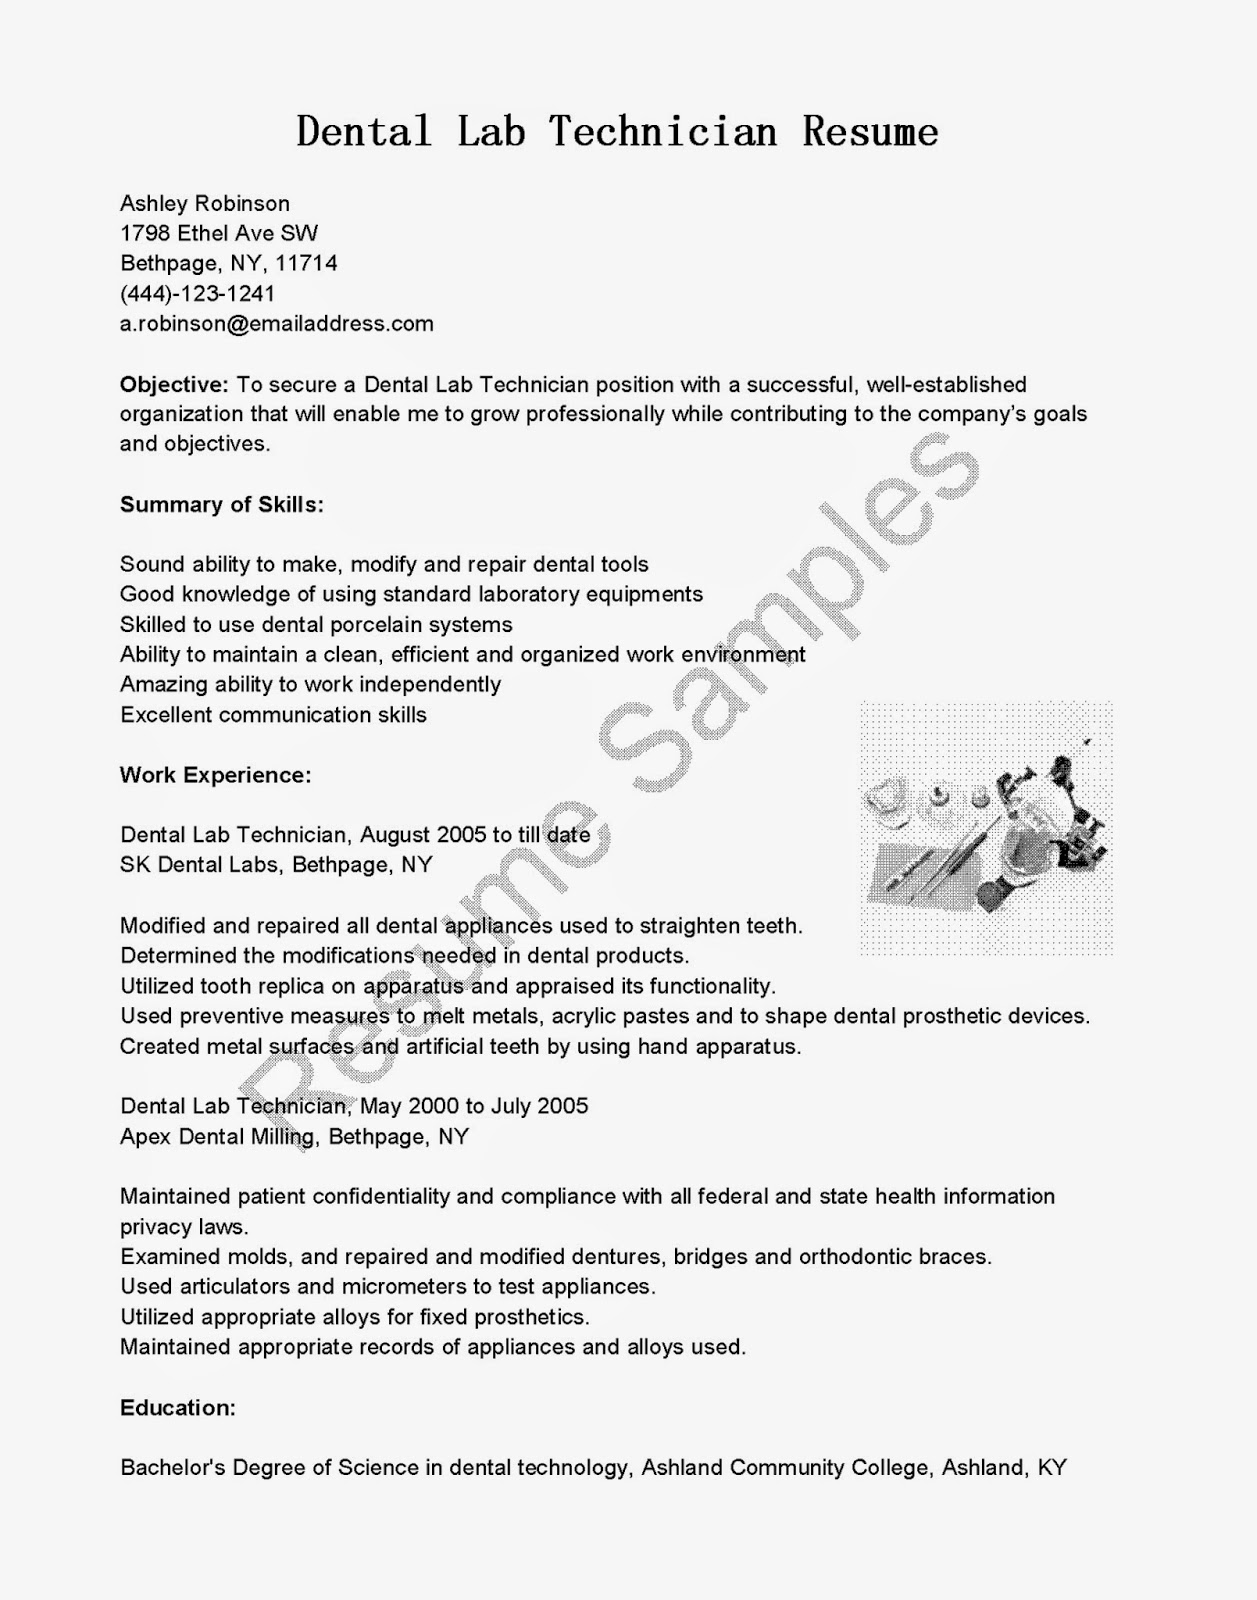 medical laboratory technician resume job description of maintenance service agriculture environment spac field service technician resume - Wastewater Technician Resume Sample